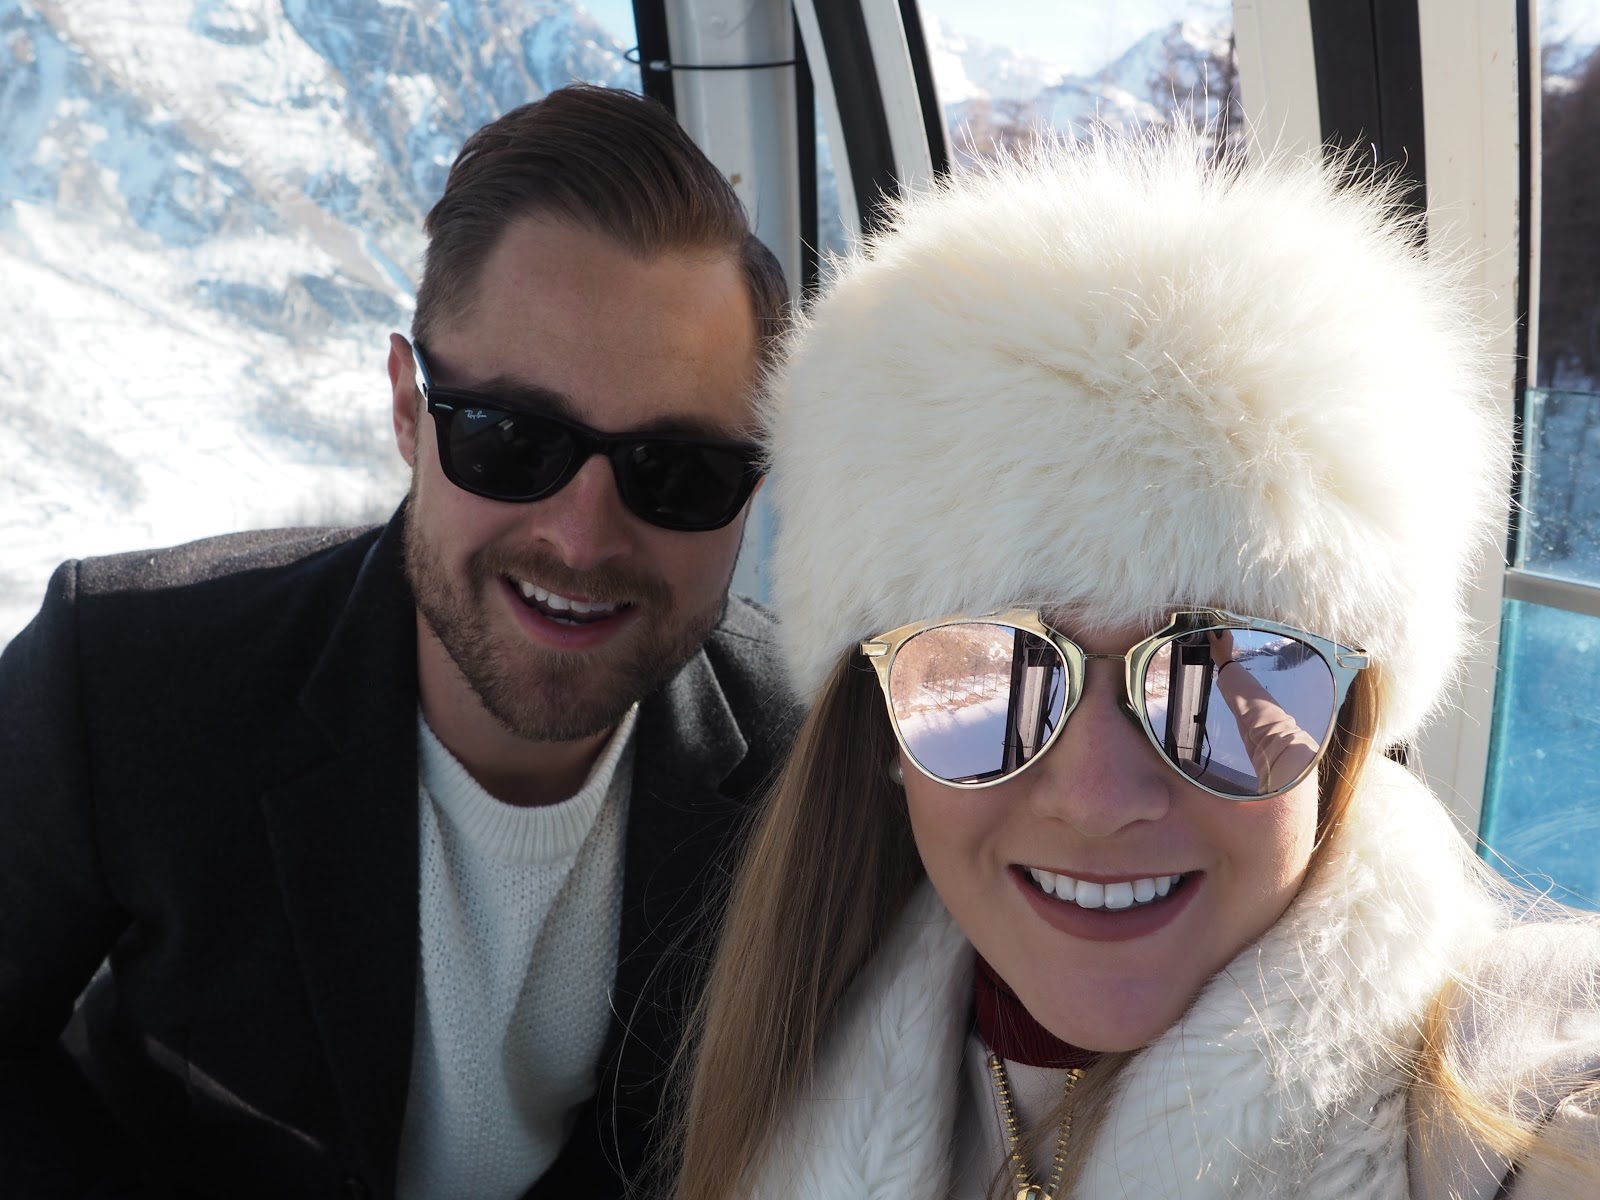 Smiling couple sitting in cable car against snowy mountains, Val d'Isere, France